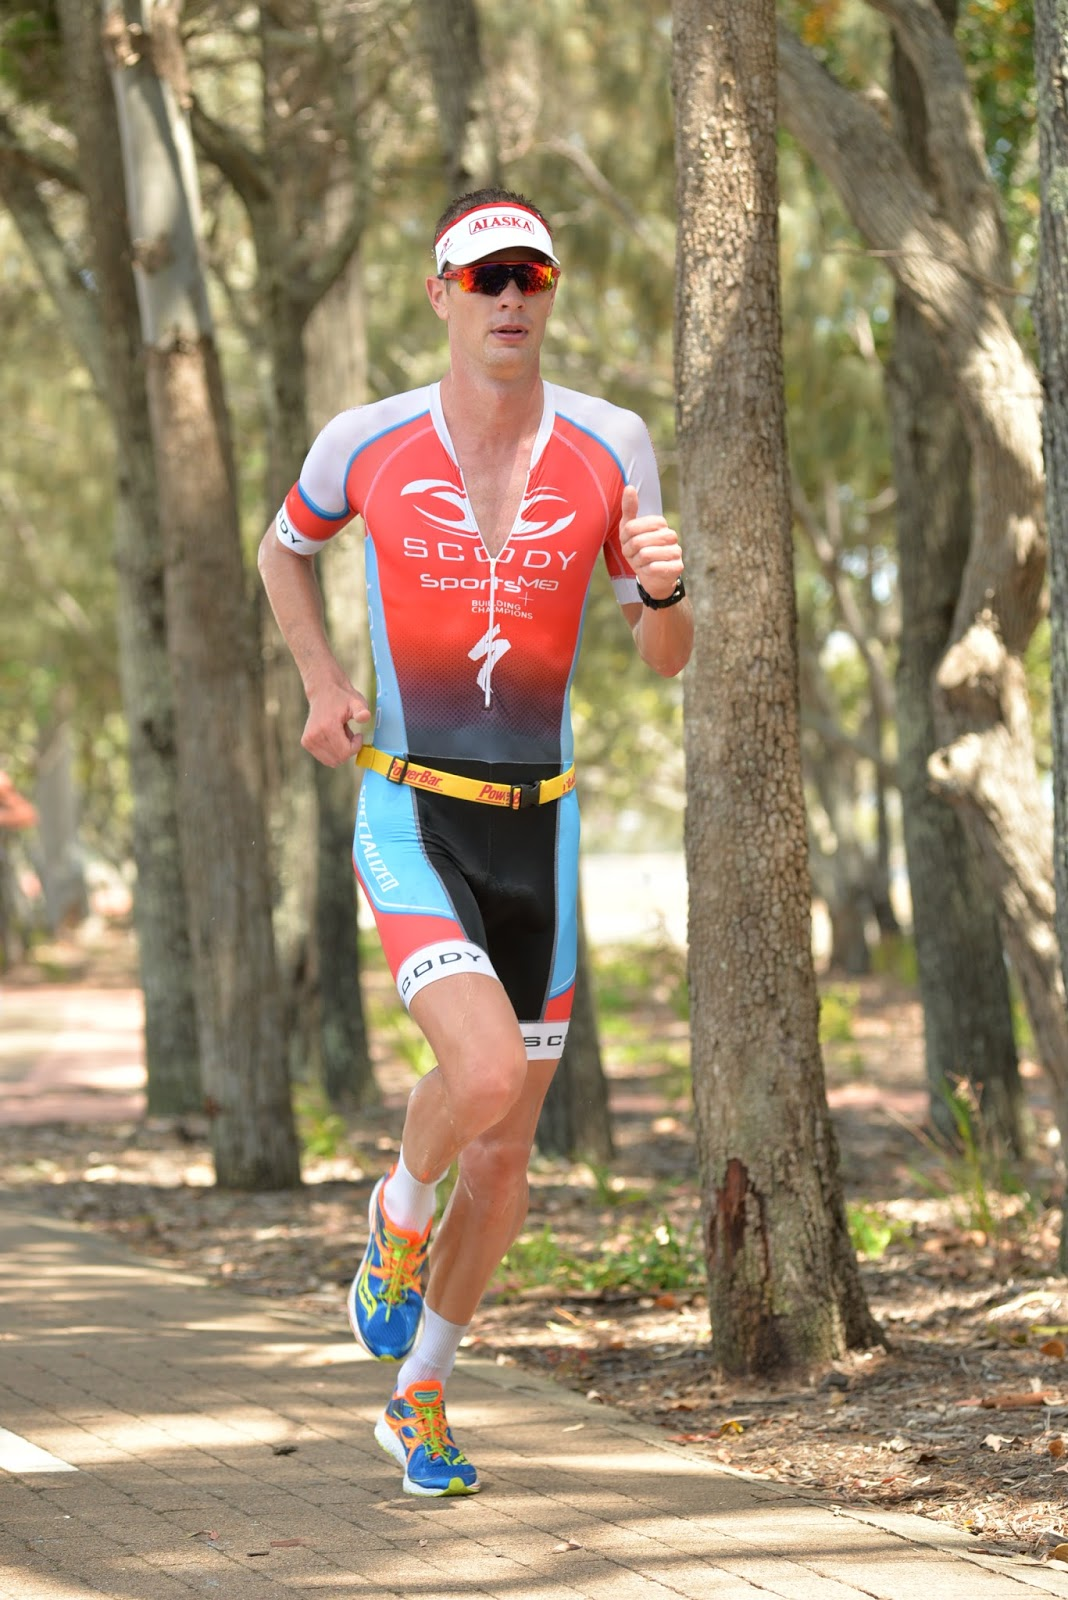 sam betten professional triathlete hervey bay 100 1st. Black Bedroom Furniture Sets. Home Design Ideas